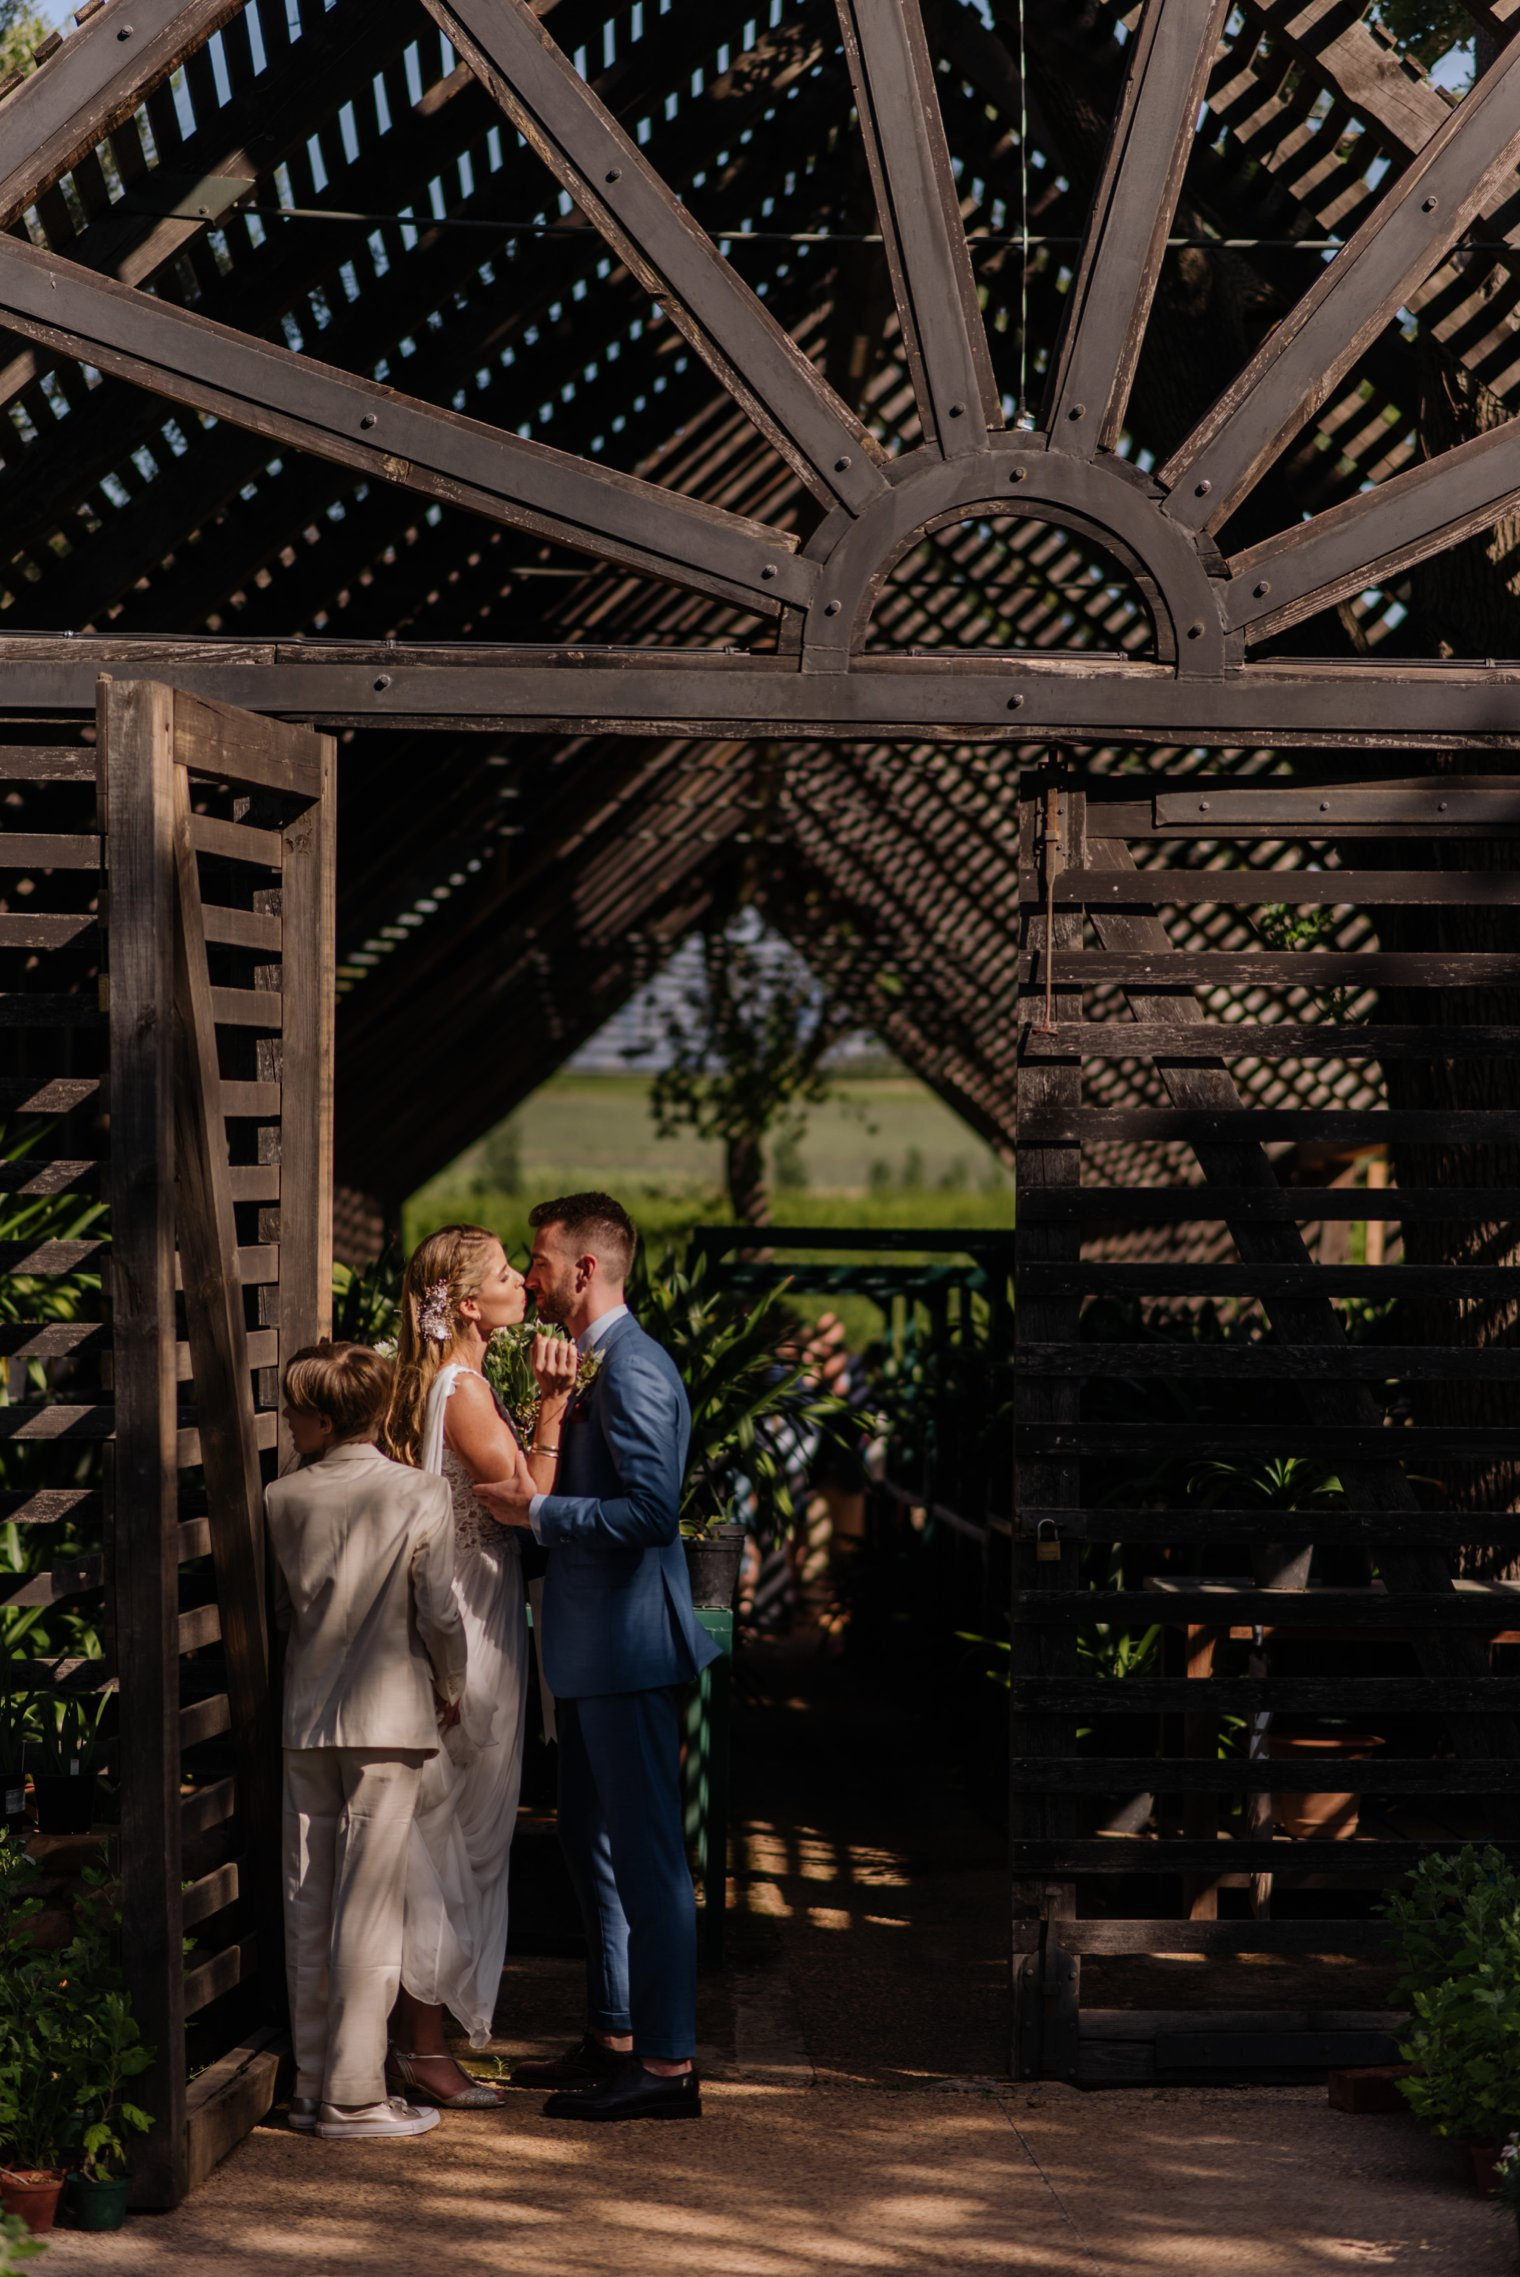 wedding at house of shadows babylonstoren